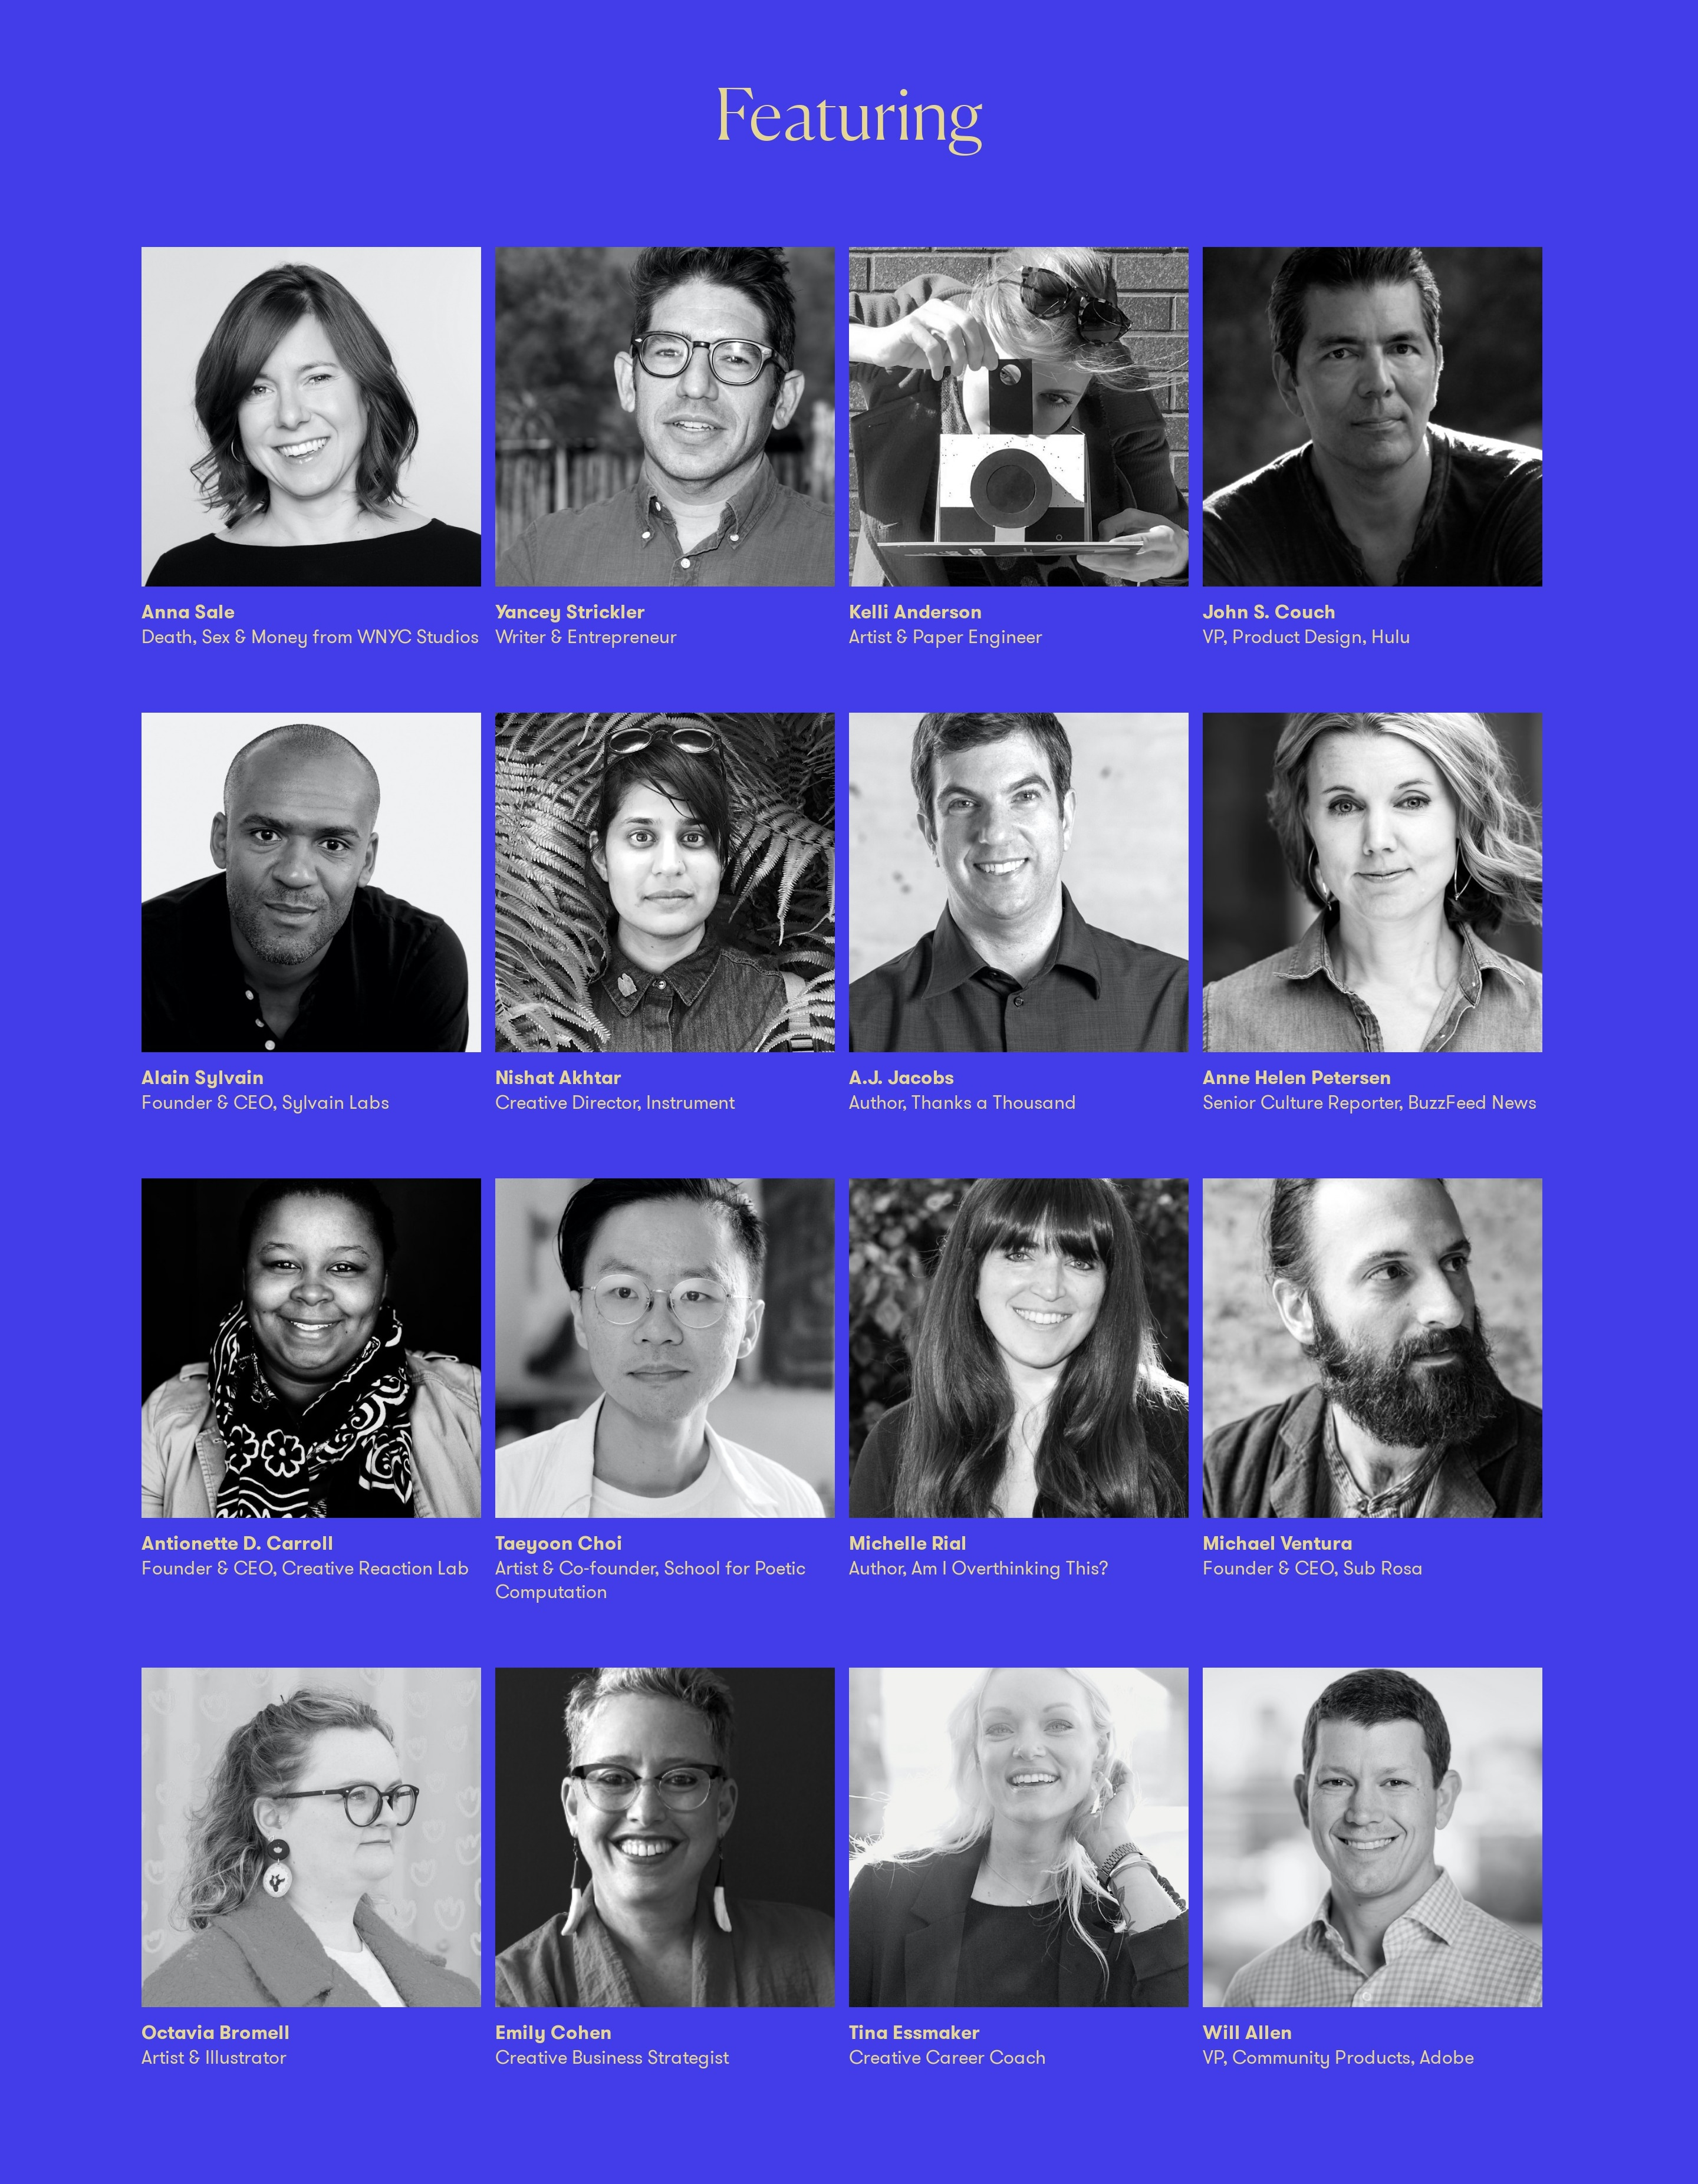 Conference Speakers List with Photos